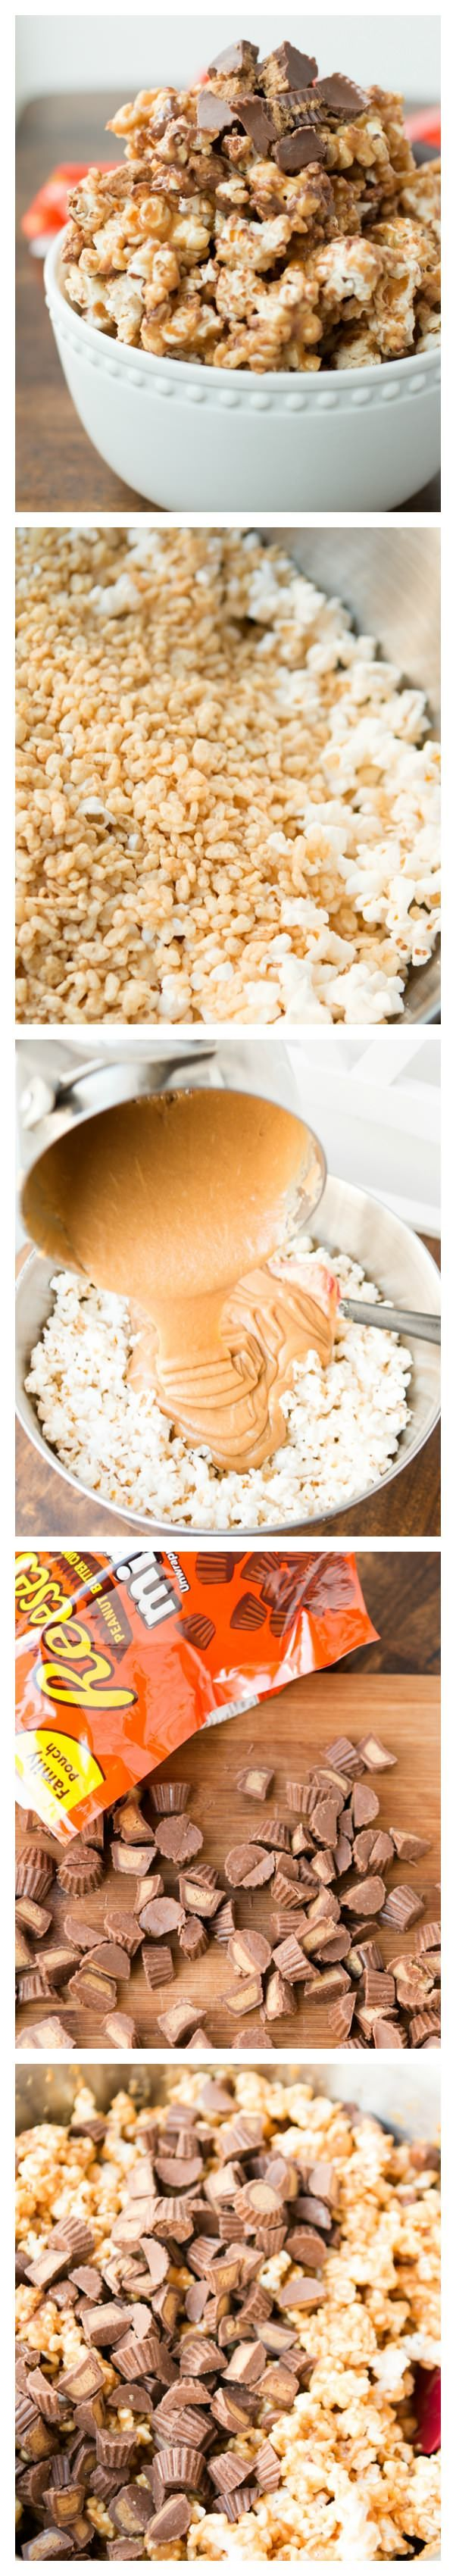 The ULTIMATE popcorn, Reese's Krispies Popcorn! ohsweetbasil.com